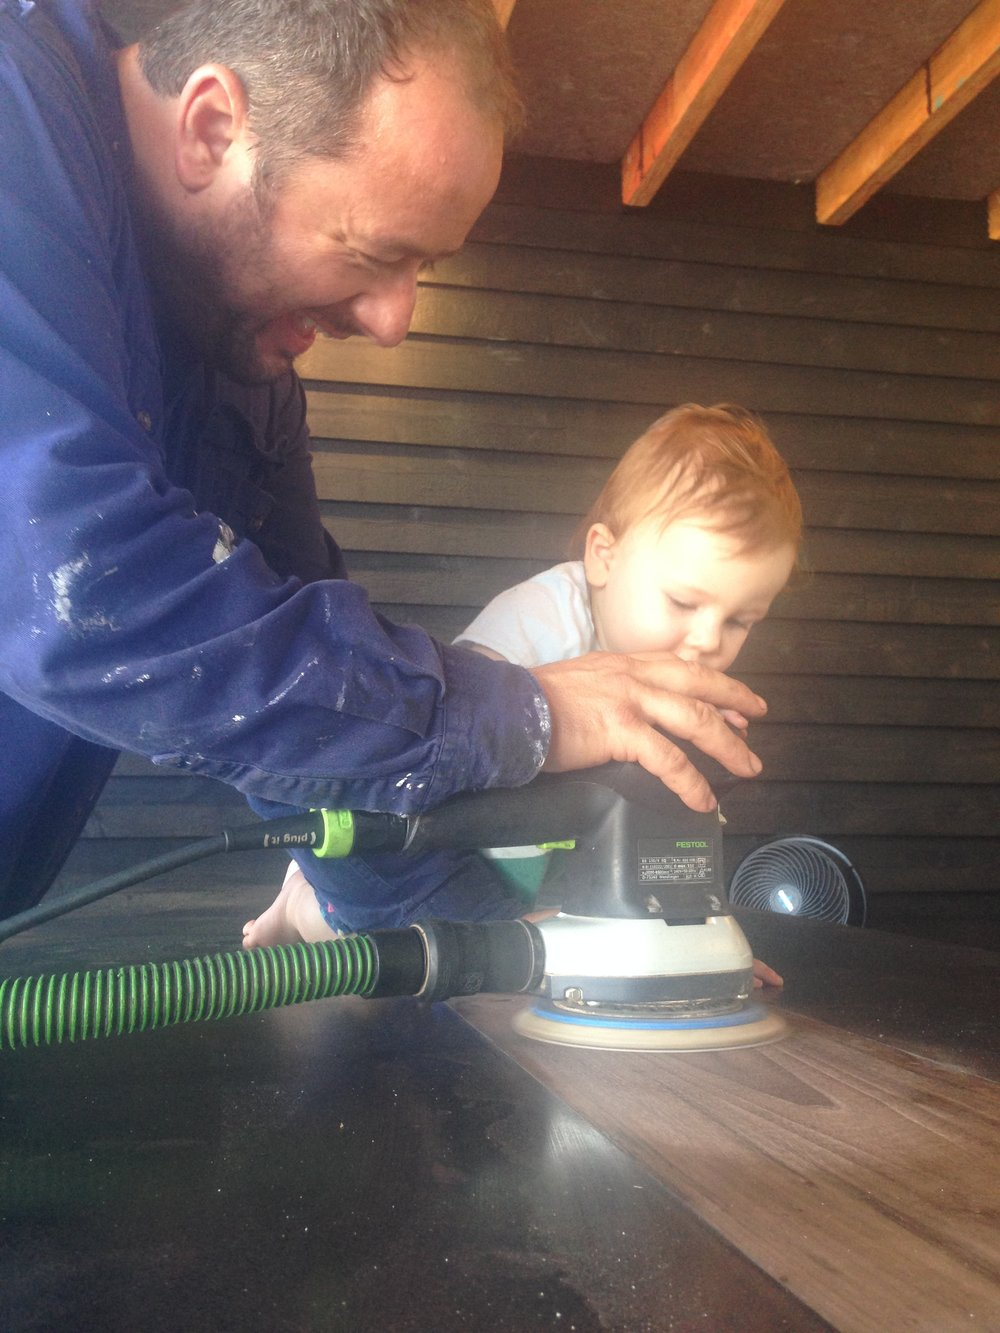 Artie helps his dad build the table.